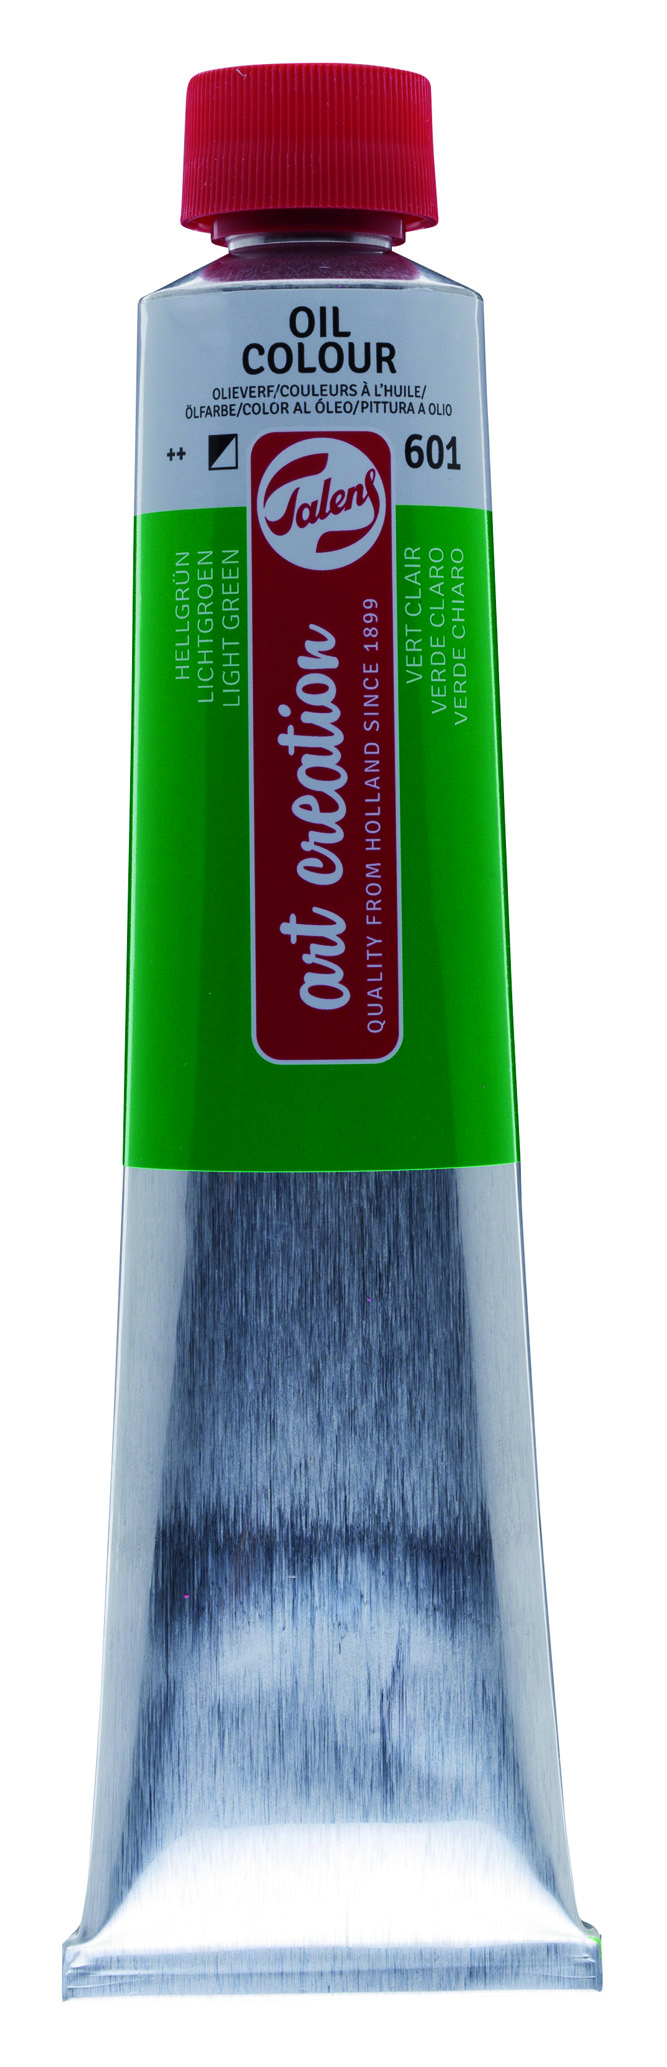 TALENS ARTCREATİON 200 ML YAĞLI BOYA 601 LIGHT GREEN